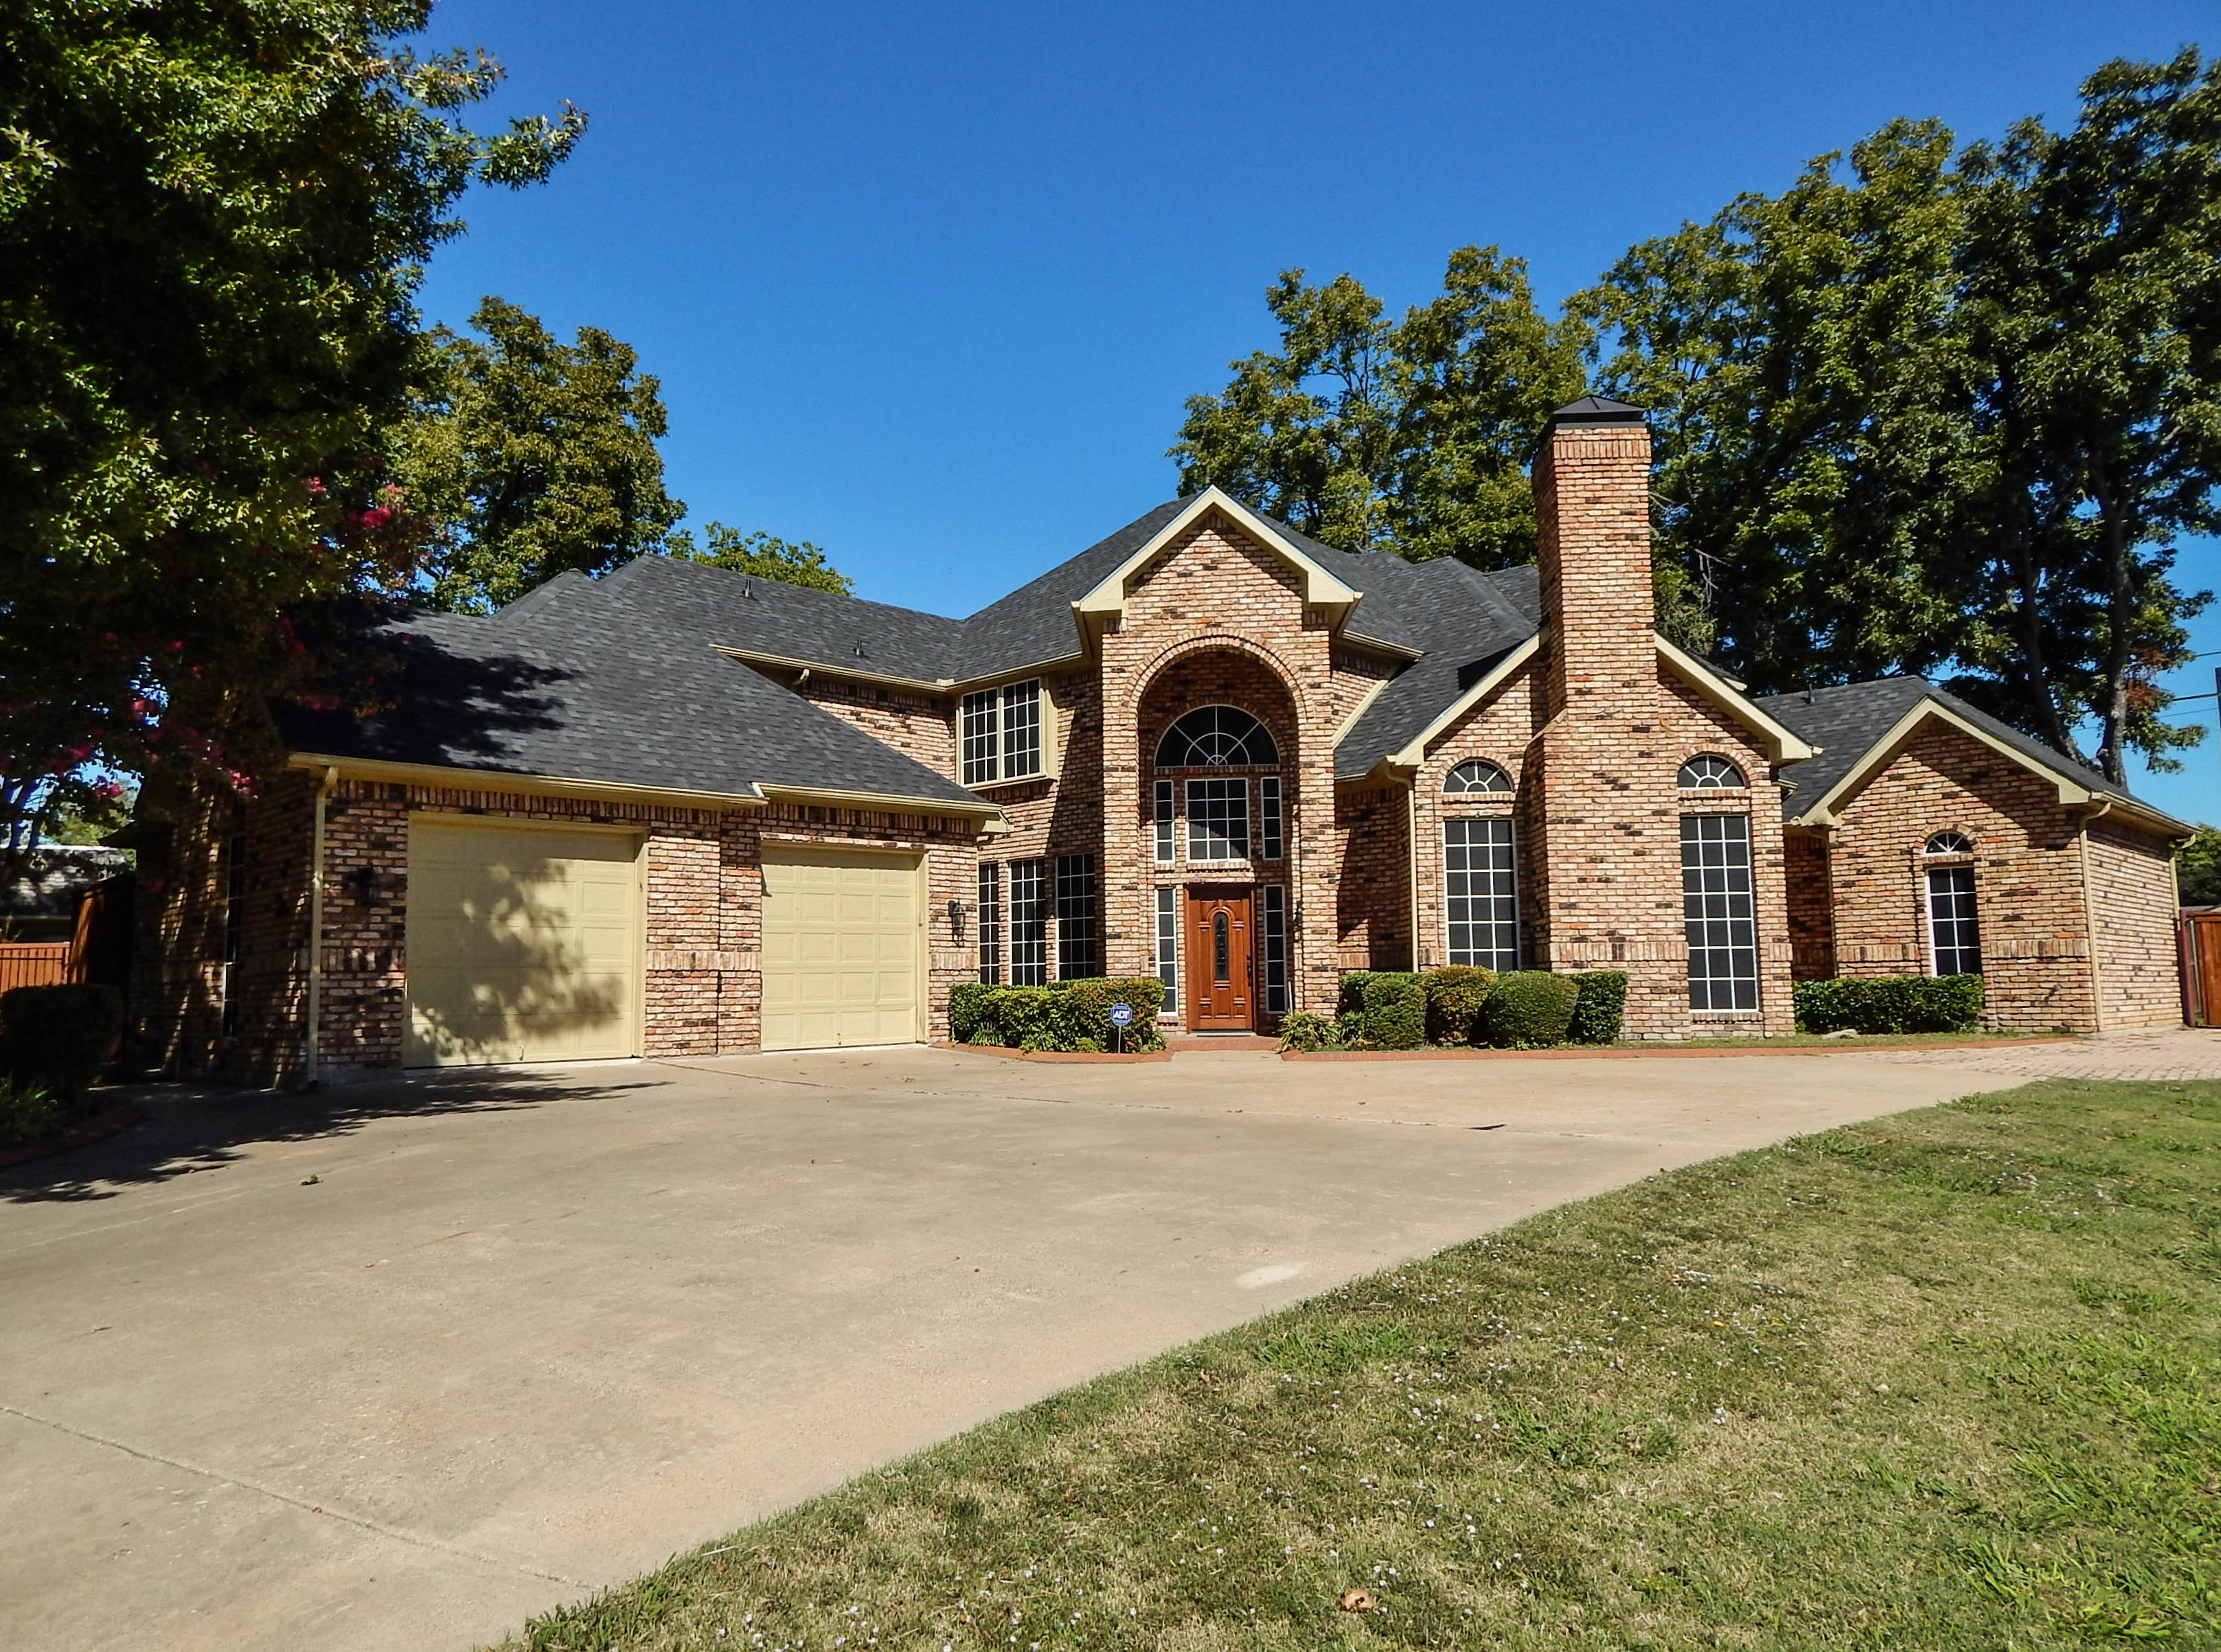 rowlett homes for sale, rowlett tx real estate, DA Rock of Homes